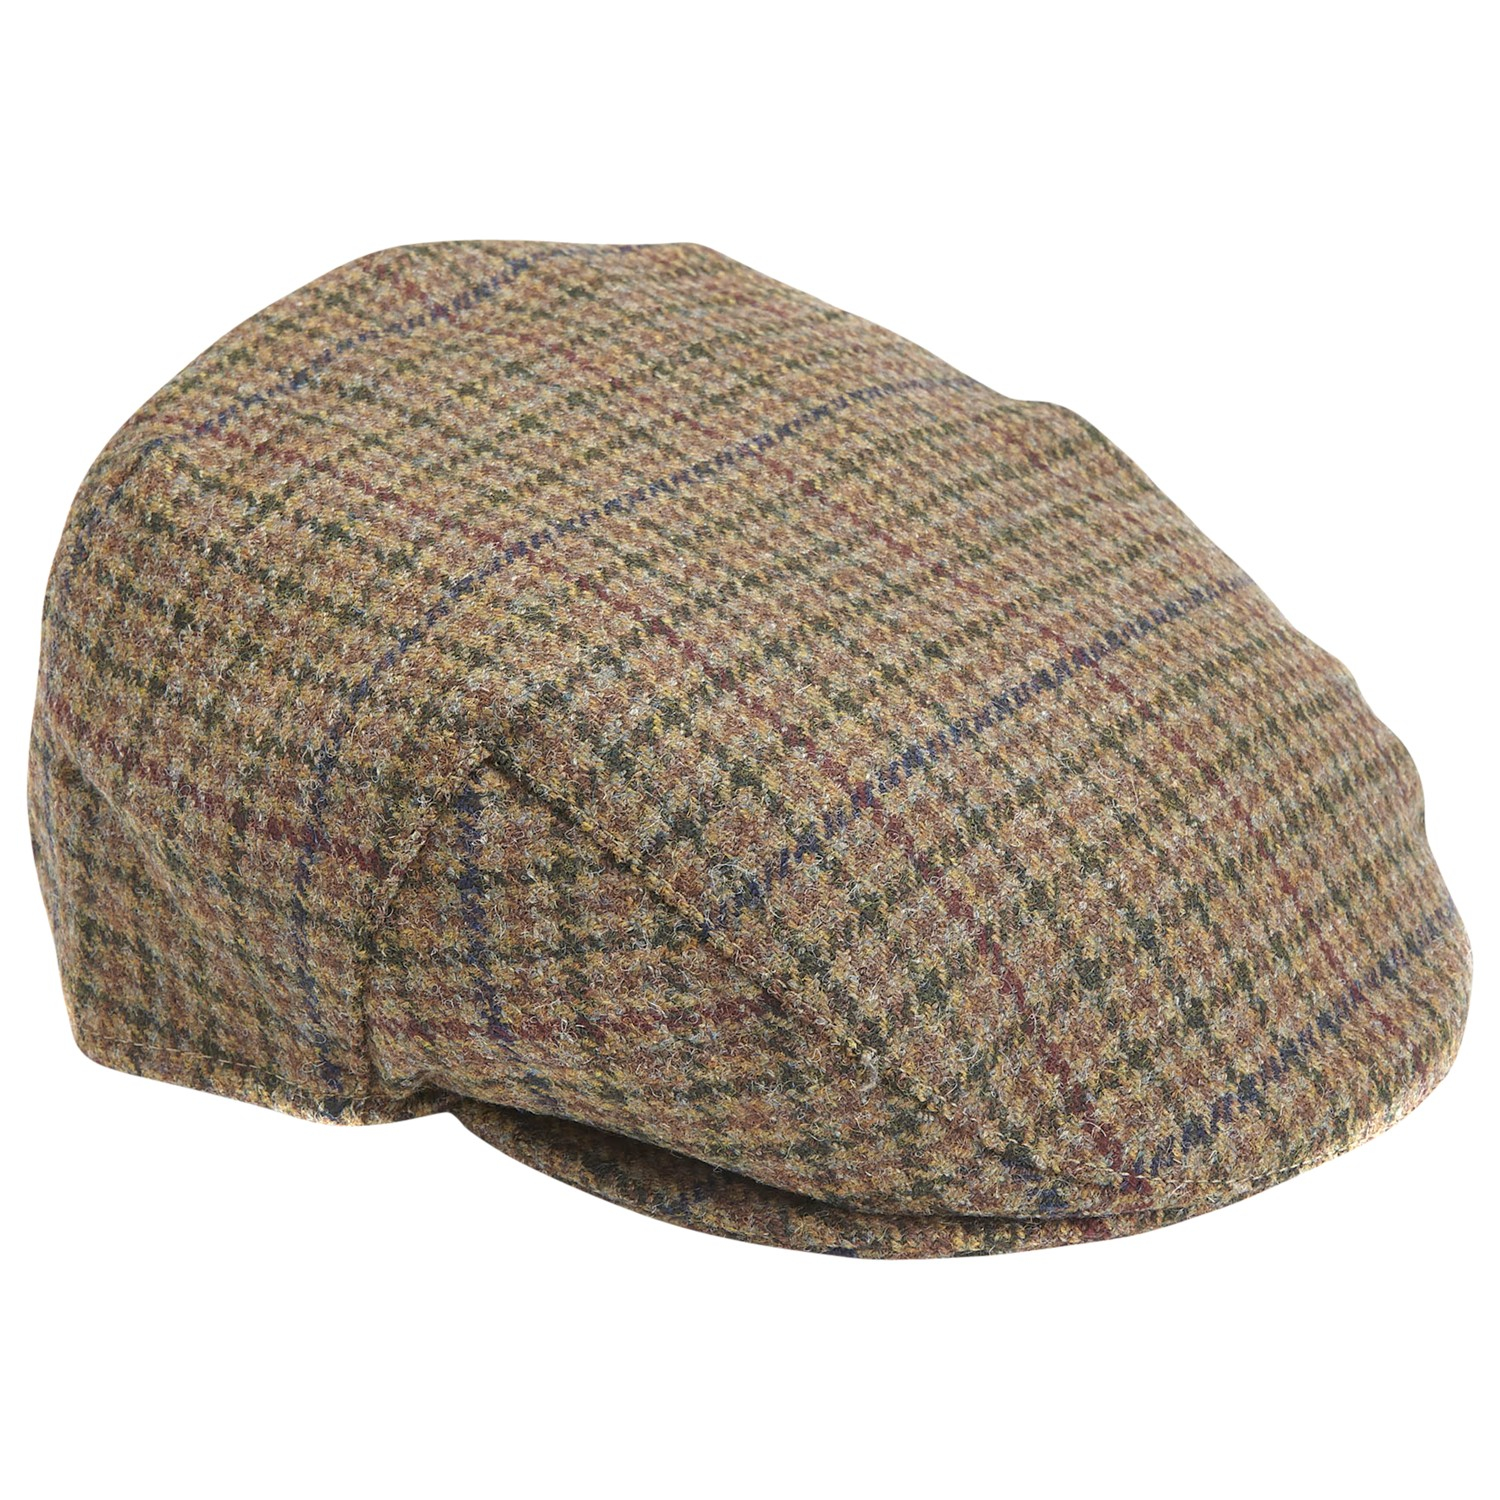 1479b5b7672 Barbour Wool Crieff Check Flat Cap in Green for Men - Lyst